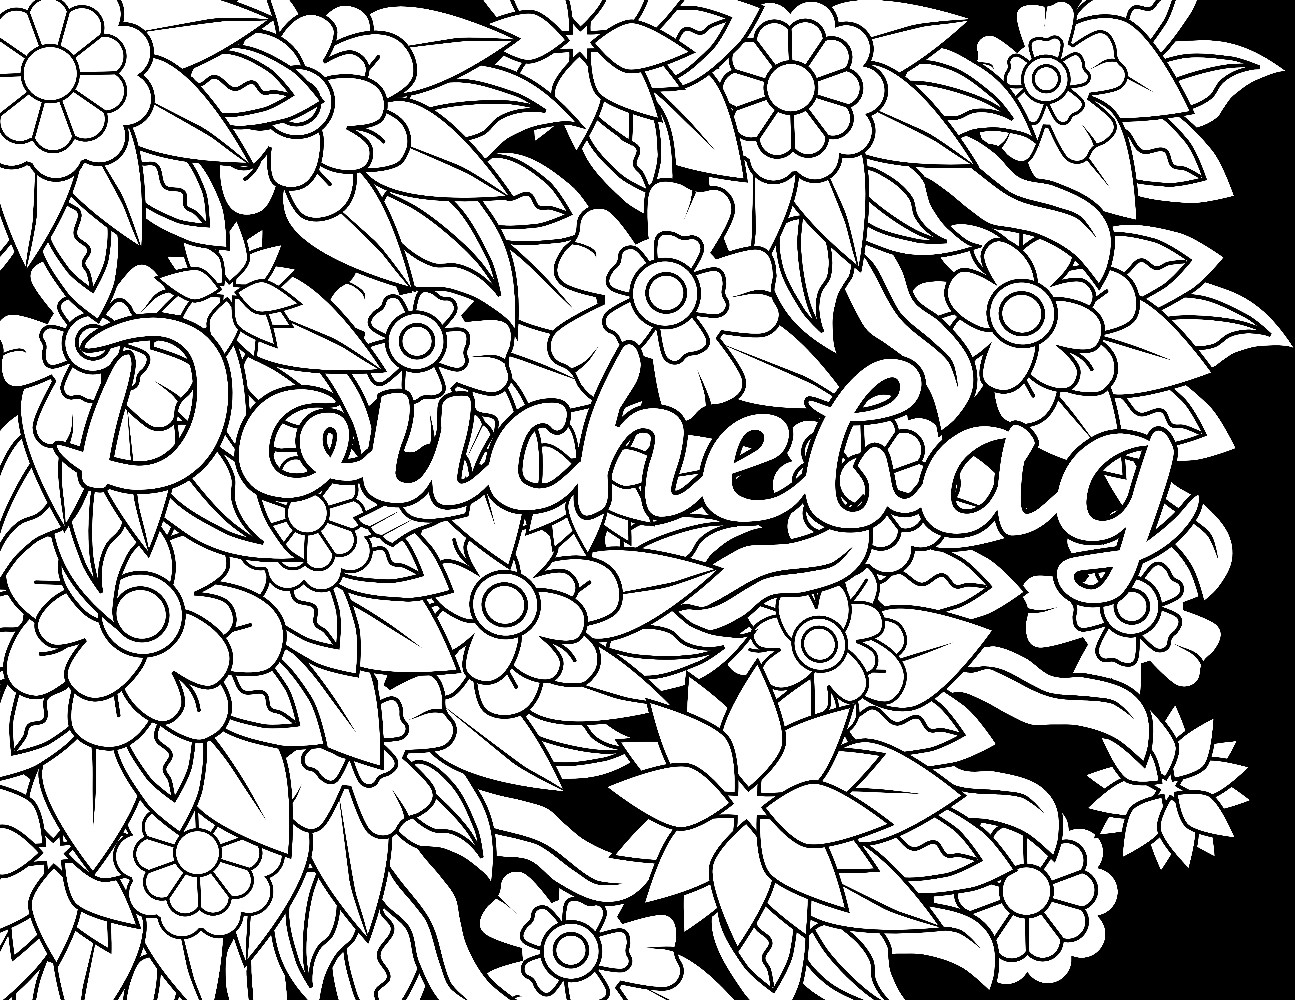 Best ideas about Free Swear Word Coloring Pages For Adults . Save or Pin Best Douchebag Swear Word Coloring Page Adult Coloring Now.